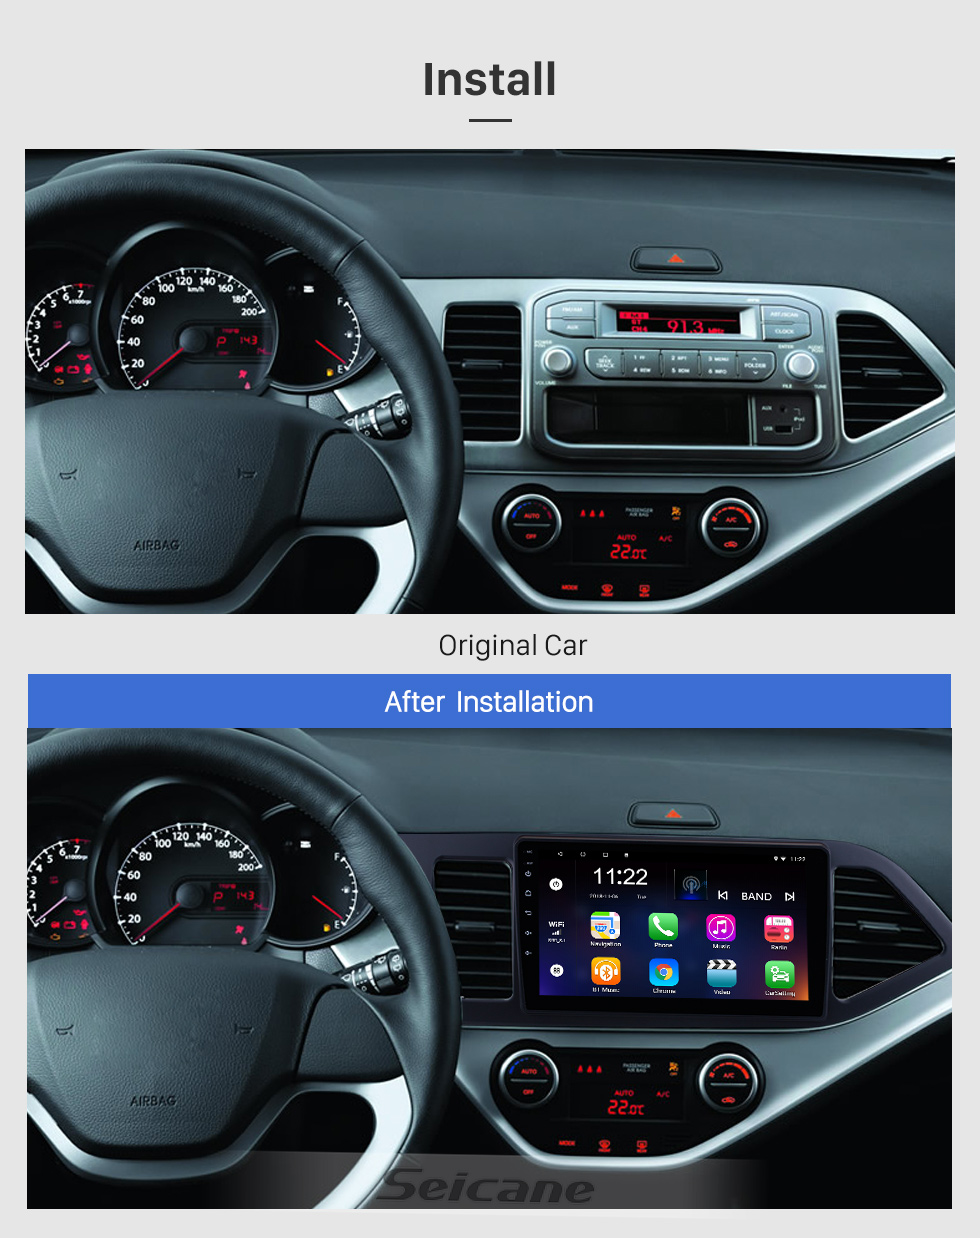 Seicane 9 inch Android 8.1 GPS Radio for 2011-2014 KIA PICANTO Morning (LHD) 1024*600 Touch Screen Bluetooth Navigation system Mirror link OBD2 DVR  Backup Camera TV 3G WIFI USB SD 16G Flash 1080P Video